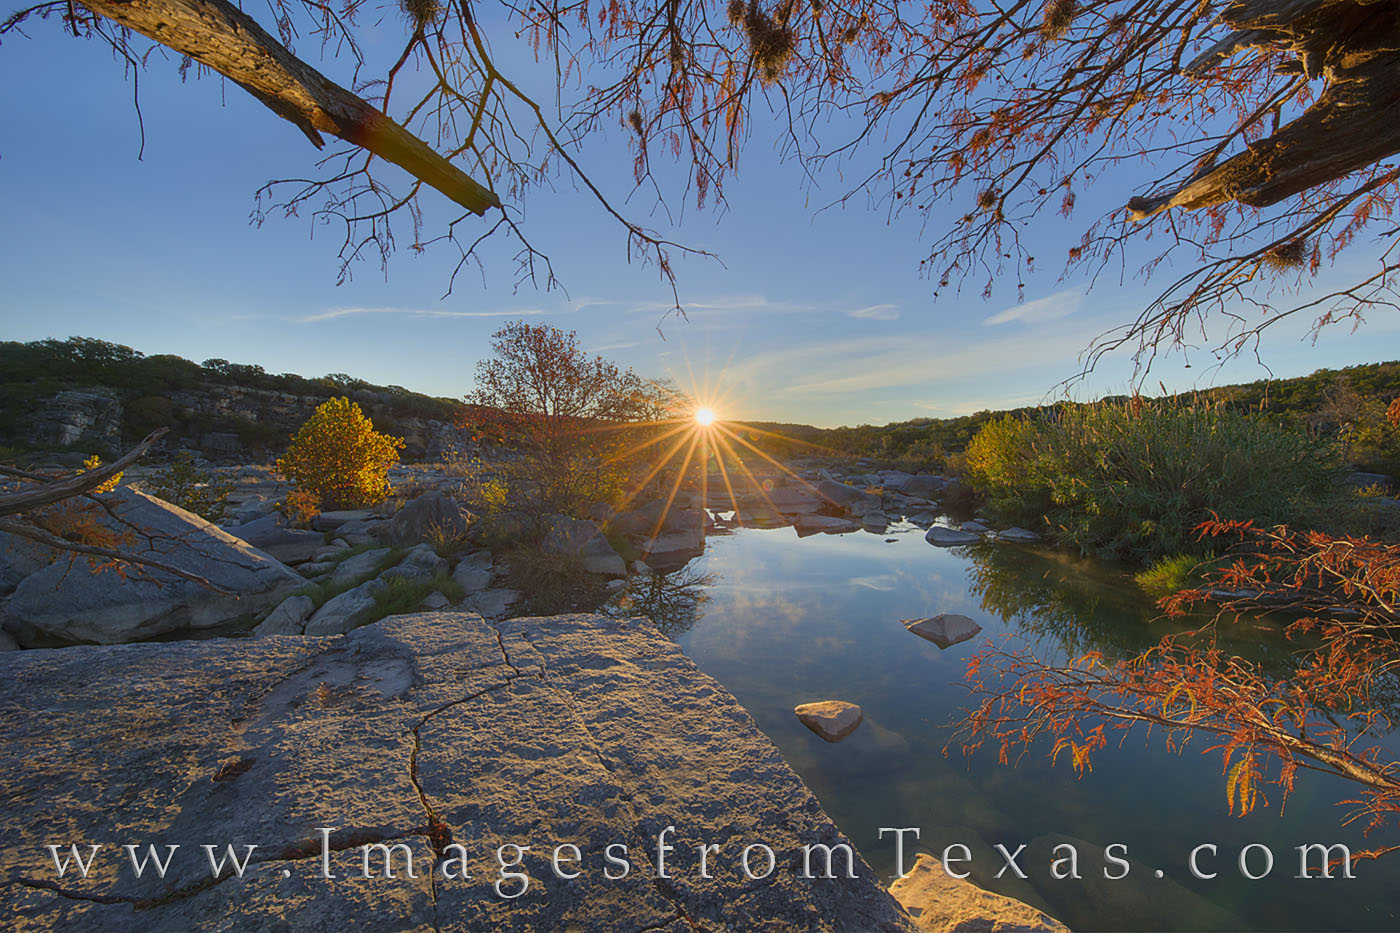 texas hill country, texas sunrise, autumn colors, fall colors, texas autumn, pedernales river, pedernales falls, texas landscapes, photo